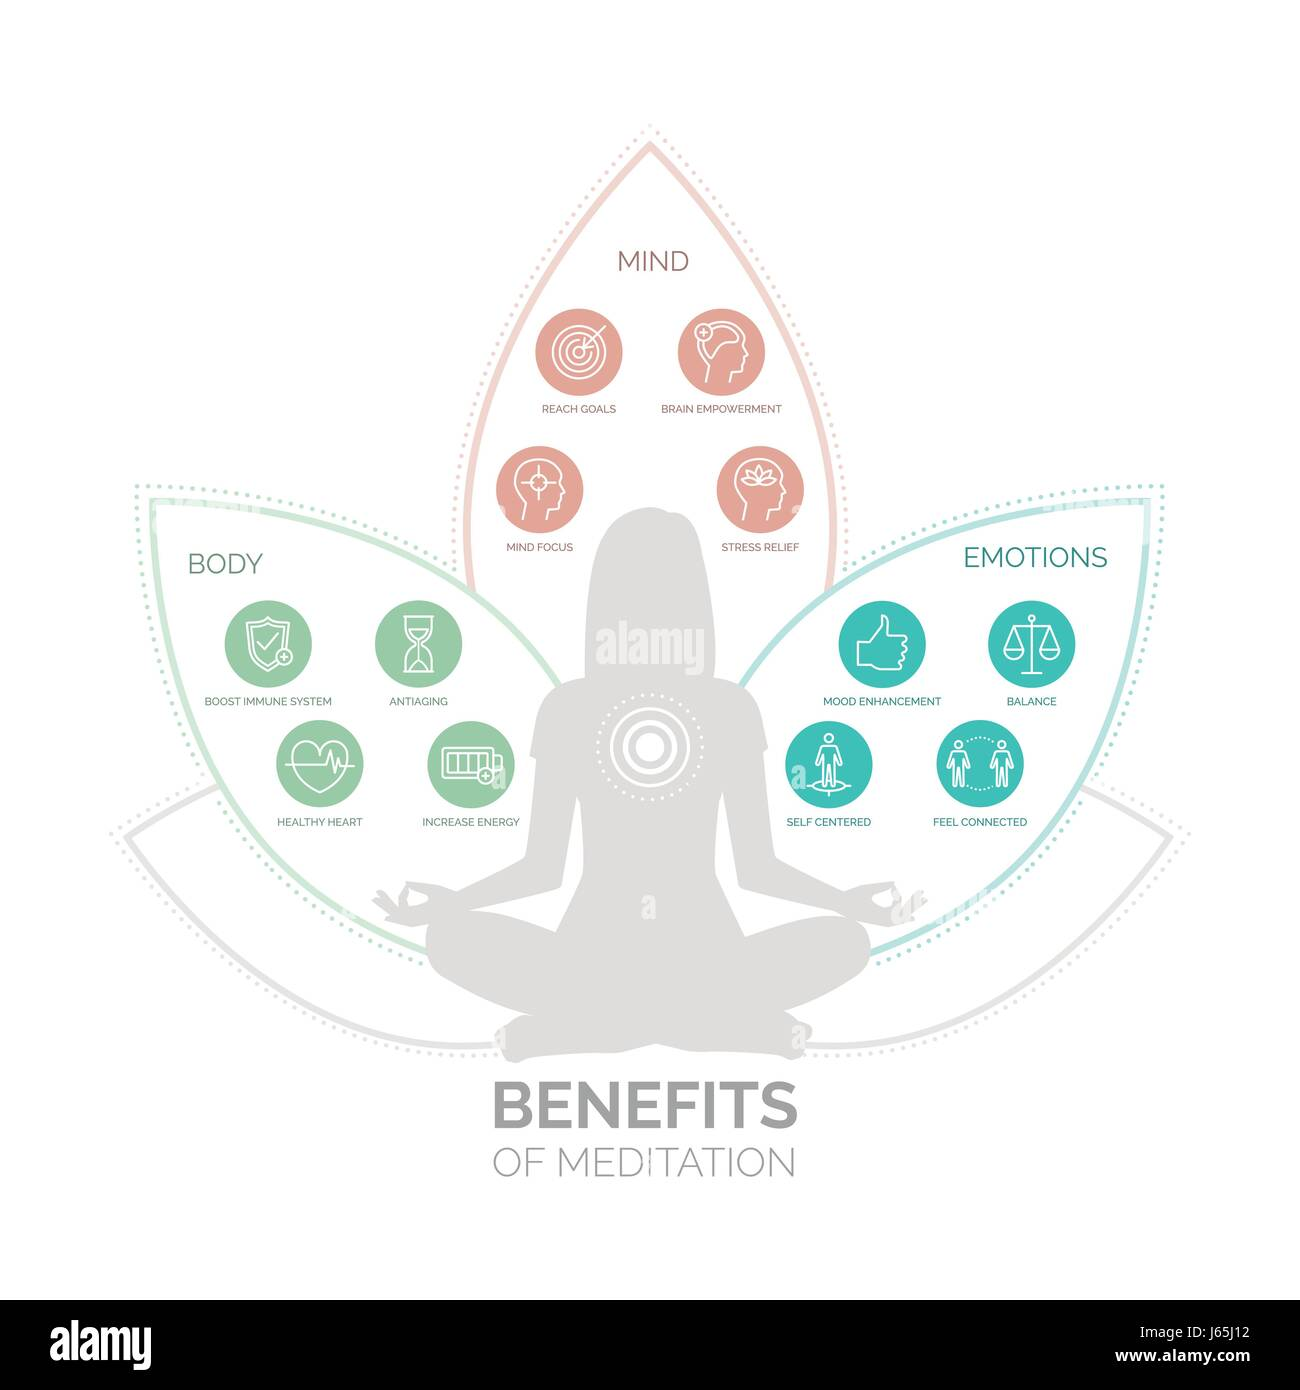 Meditation health benefits for body, mind and emotions, vector infographic with icons set - Stock Vector